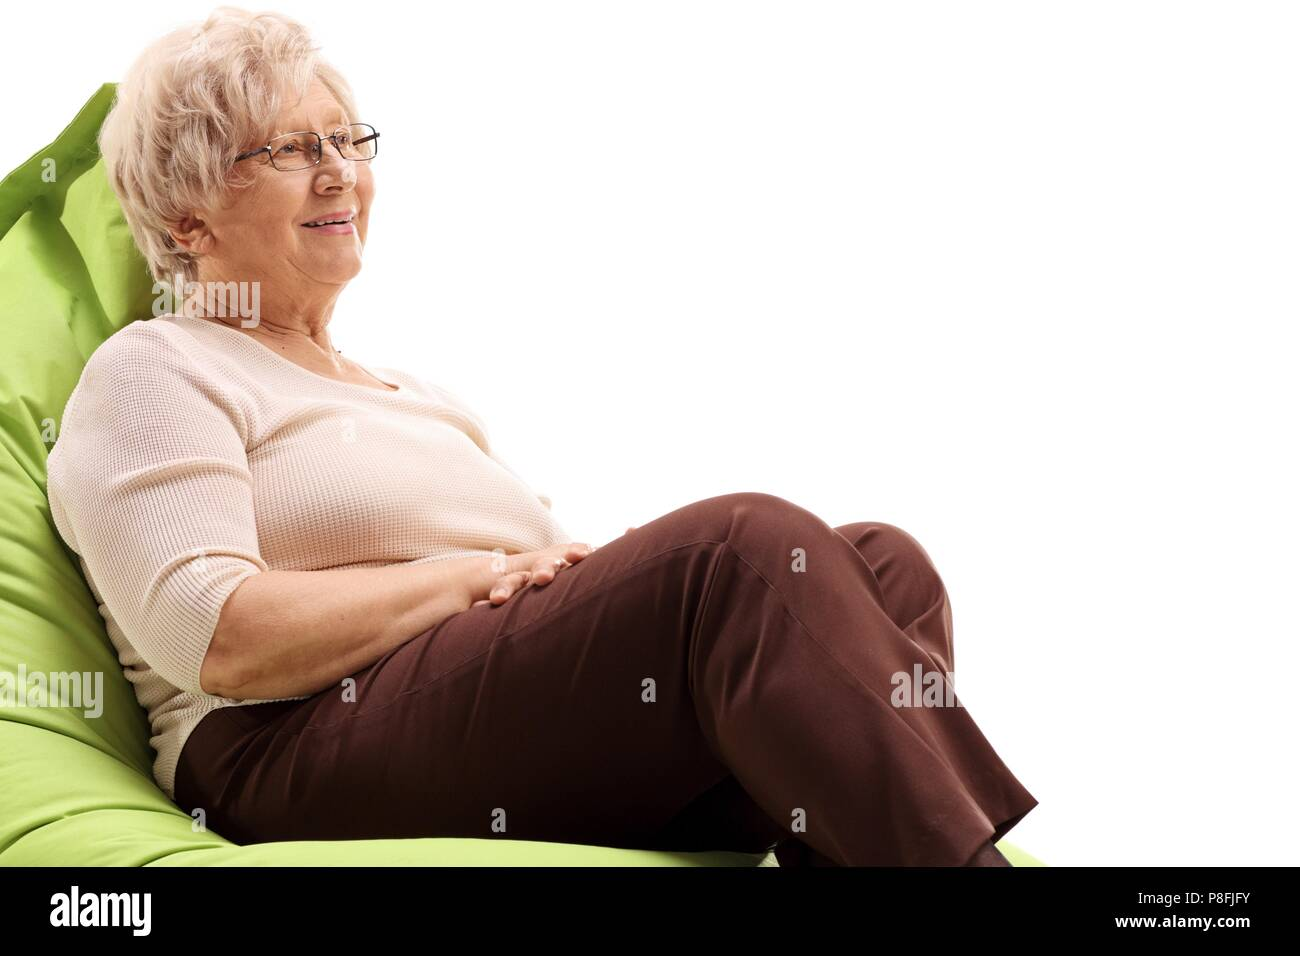 Elderly woman sitting on a beanbag isolated on white background - Stock Image